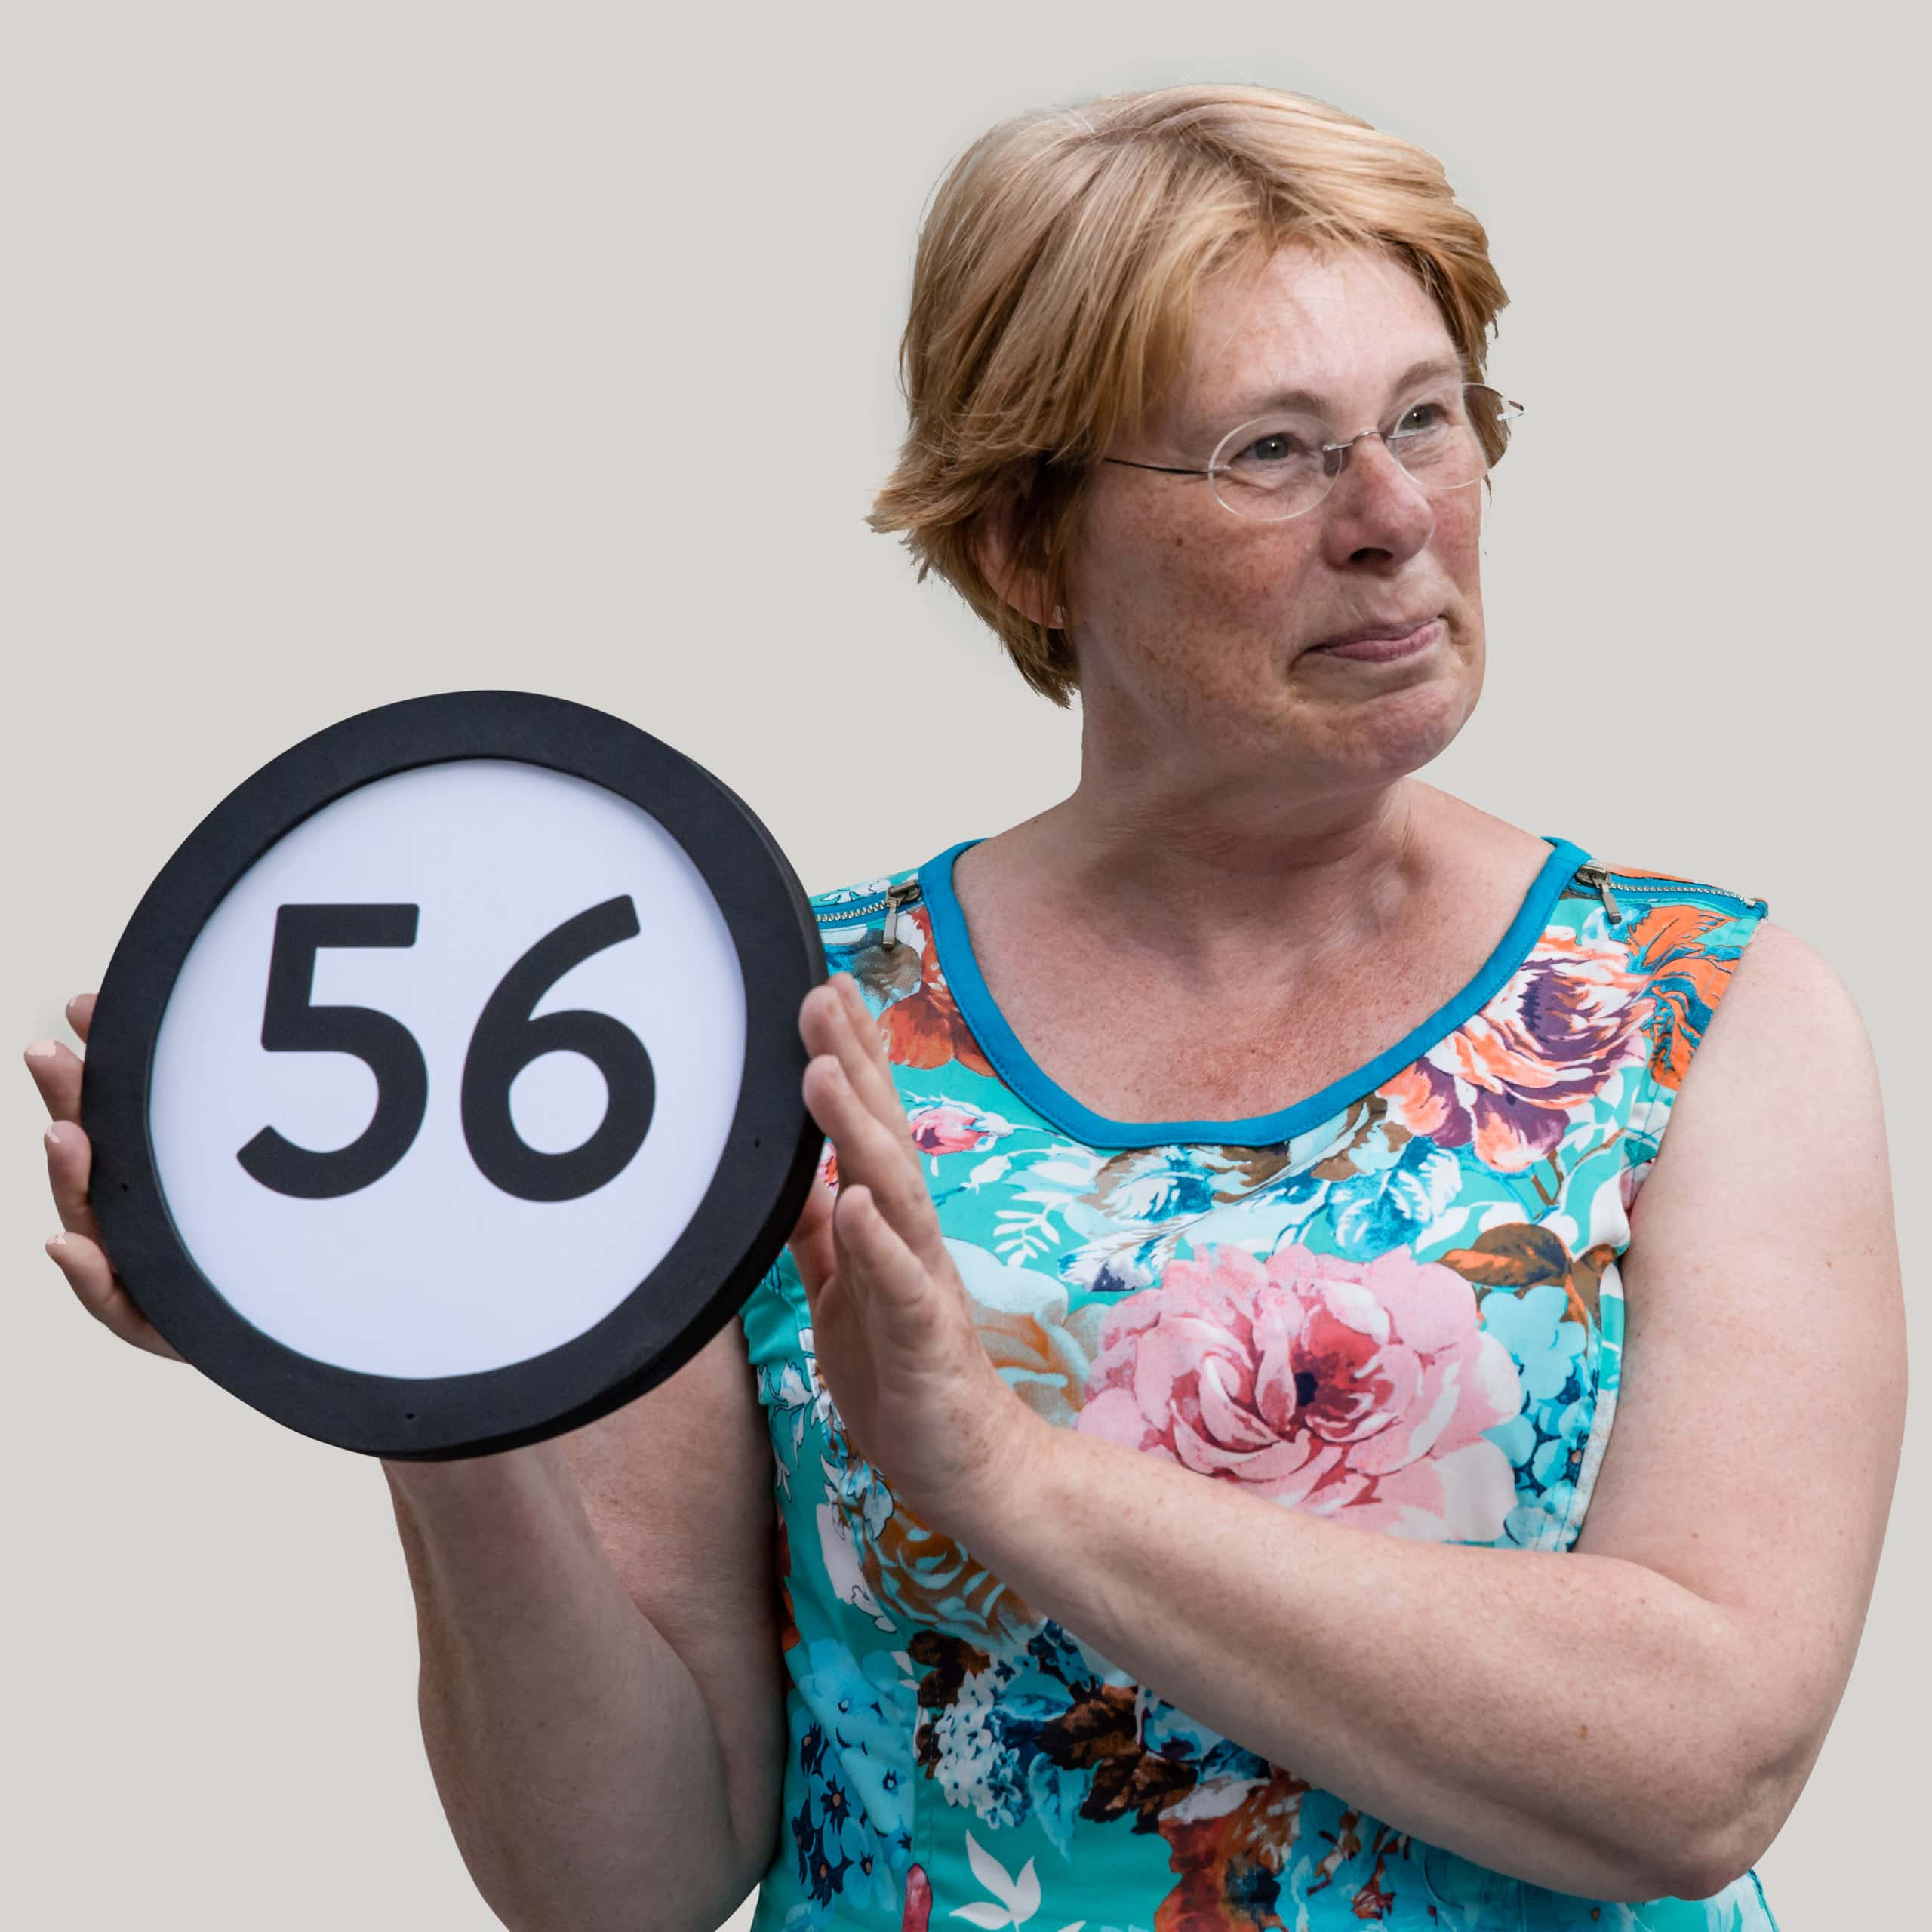 56 year old woman with short red hair and clear glasses wears a floral patterned dress with no sleeves. Her head is turned to her left with a terse but amused expression. To her right she holds up a token with the number 56 on it. This digital image is part of the 1 to Infinity portrait photography series by Danny Goldfield.